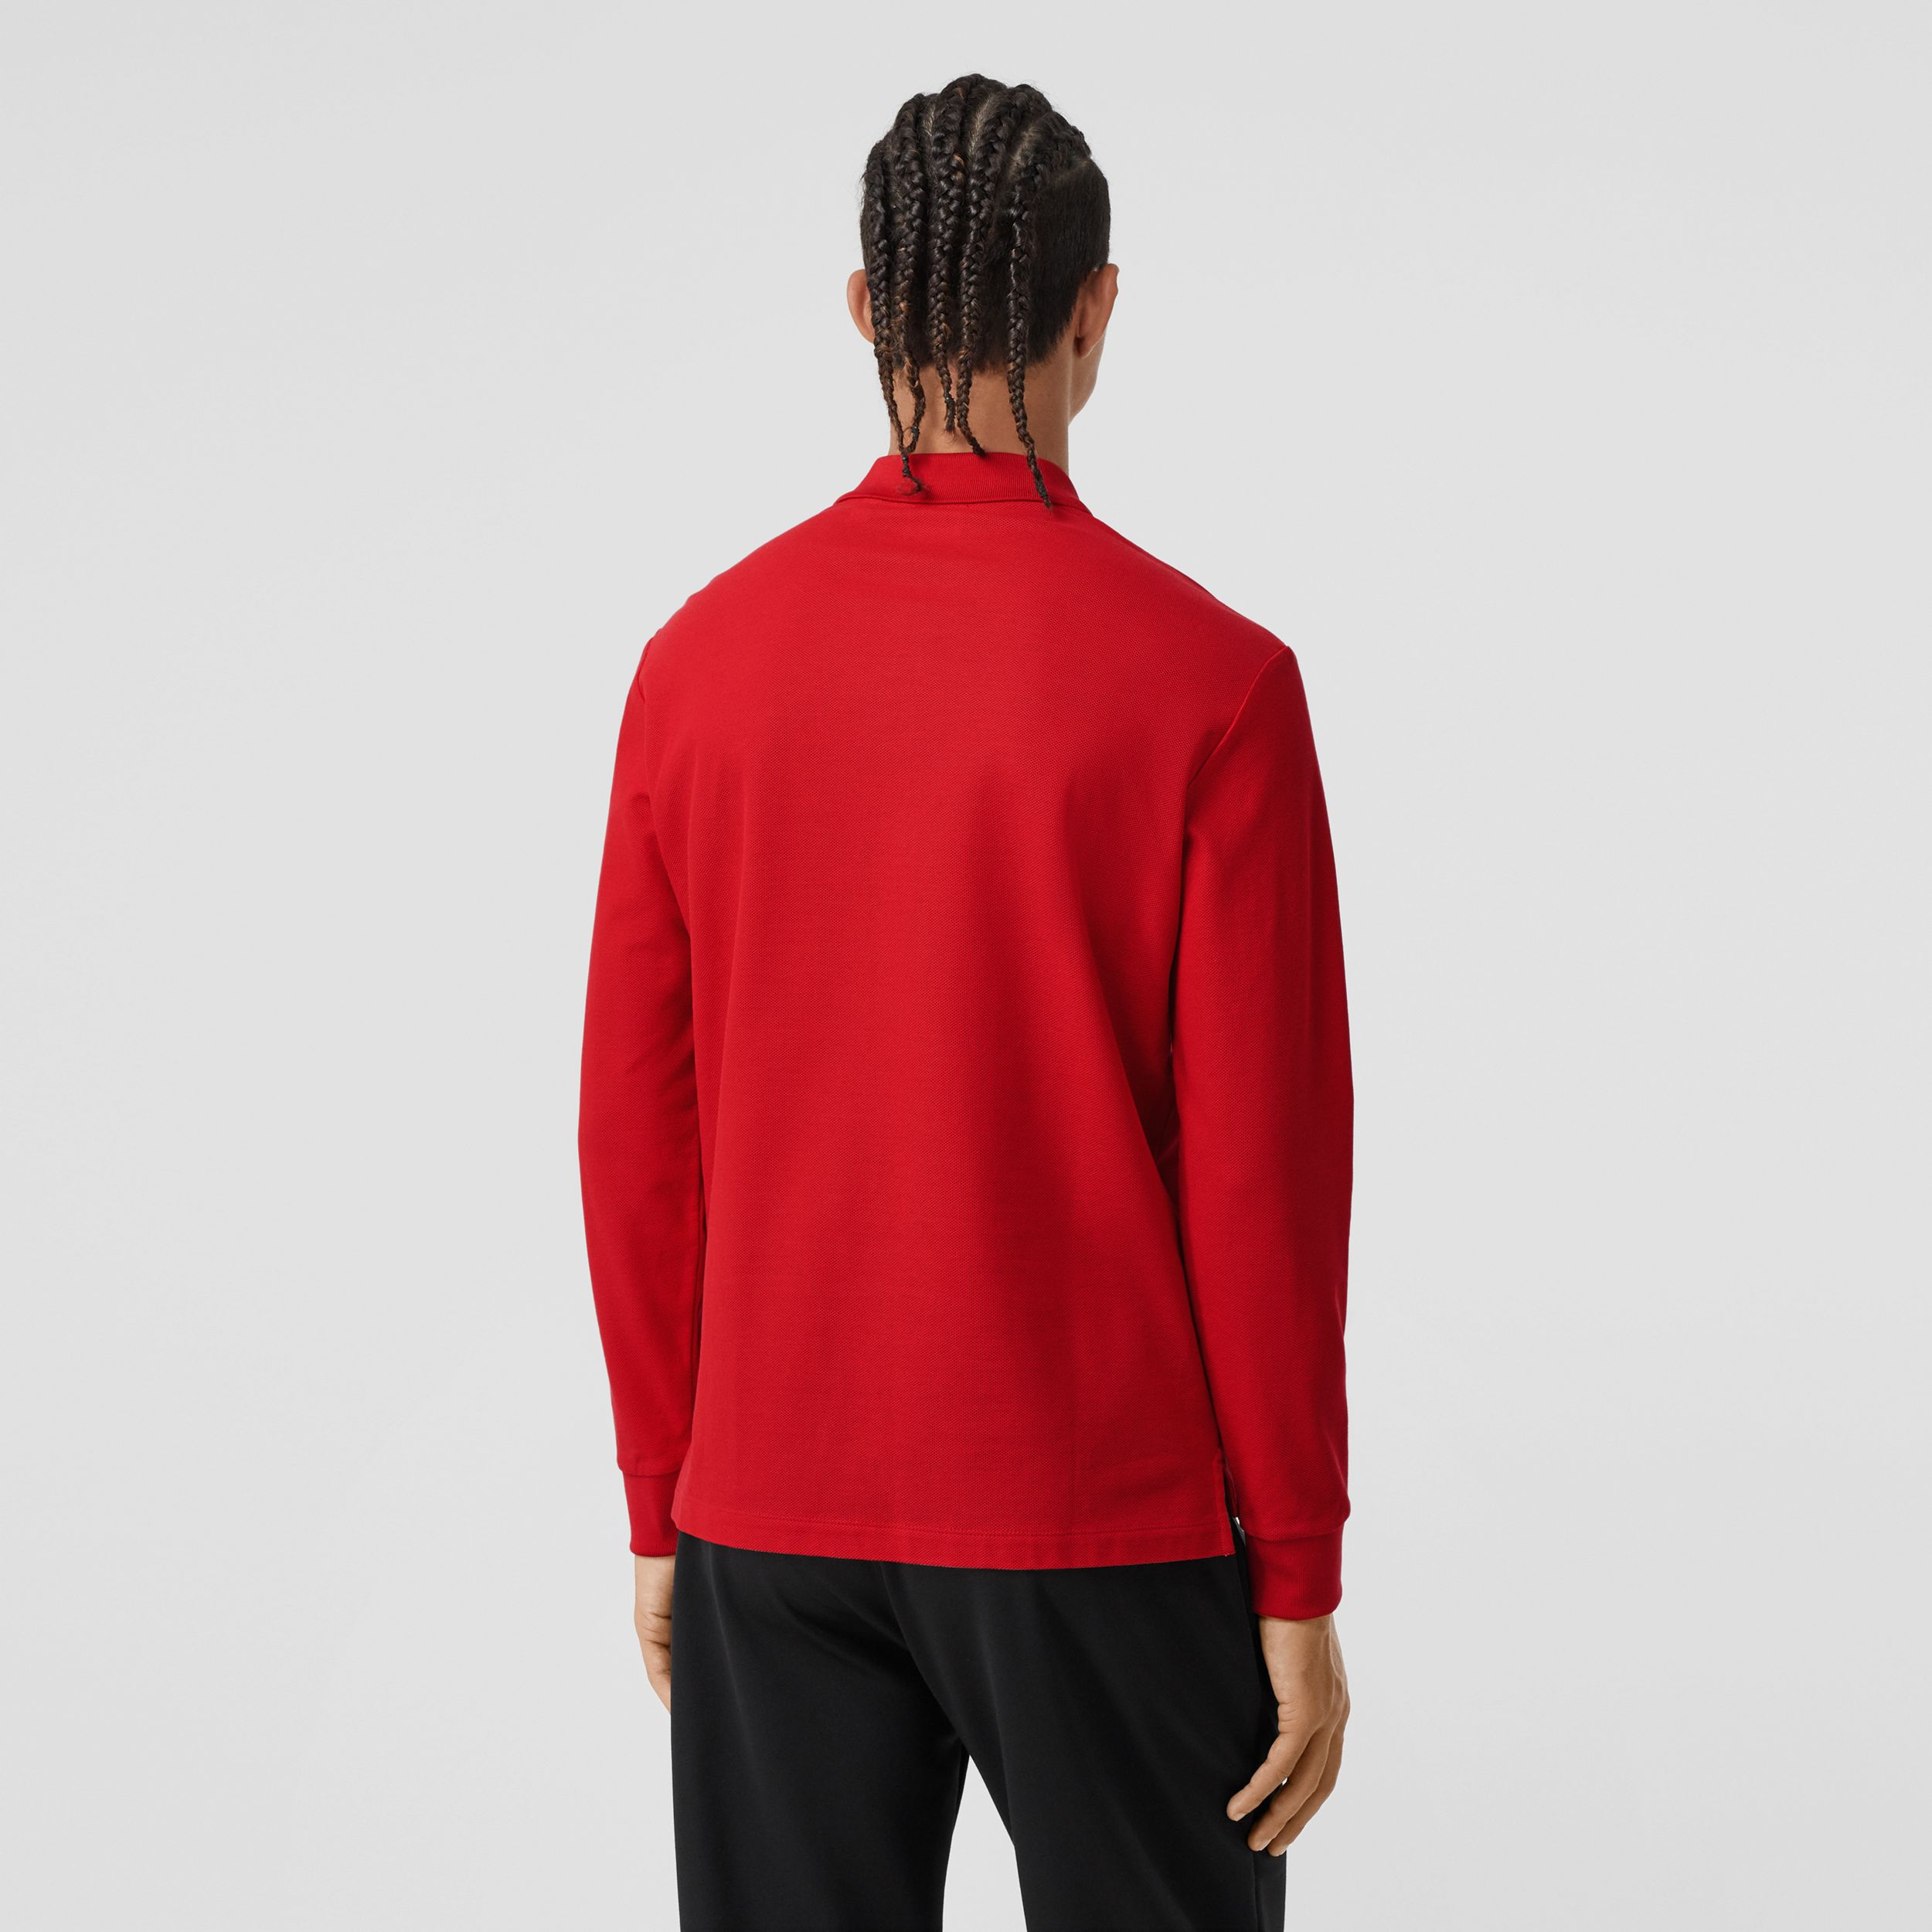 Long-sleeve Monogram Motif Cotton Piqué Polo Shirt in Bright Red - Men | Burberry - 3